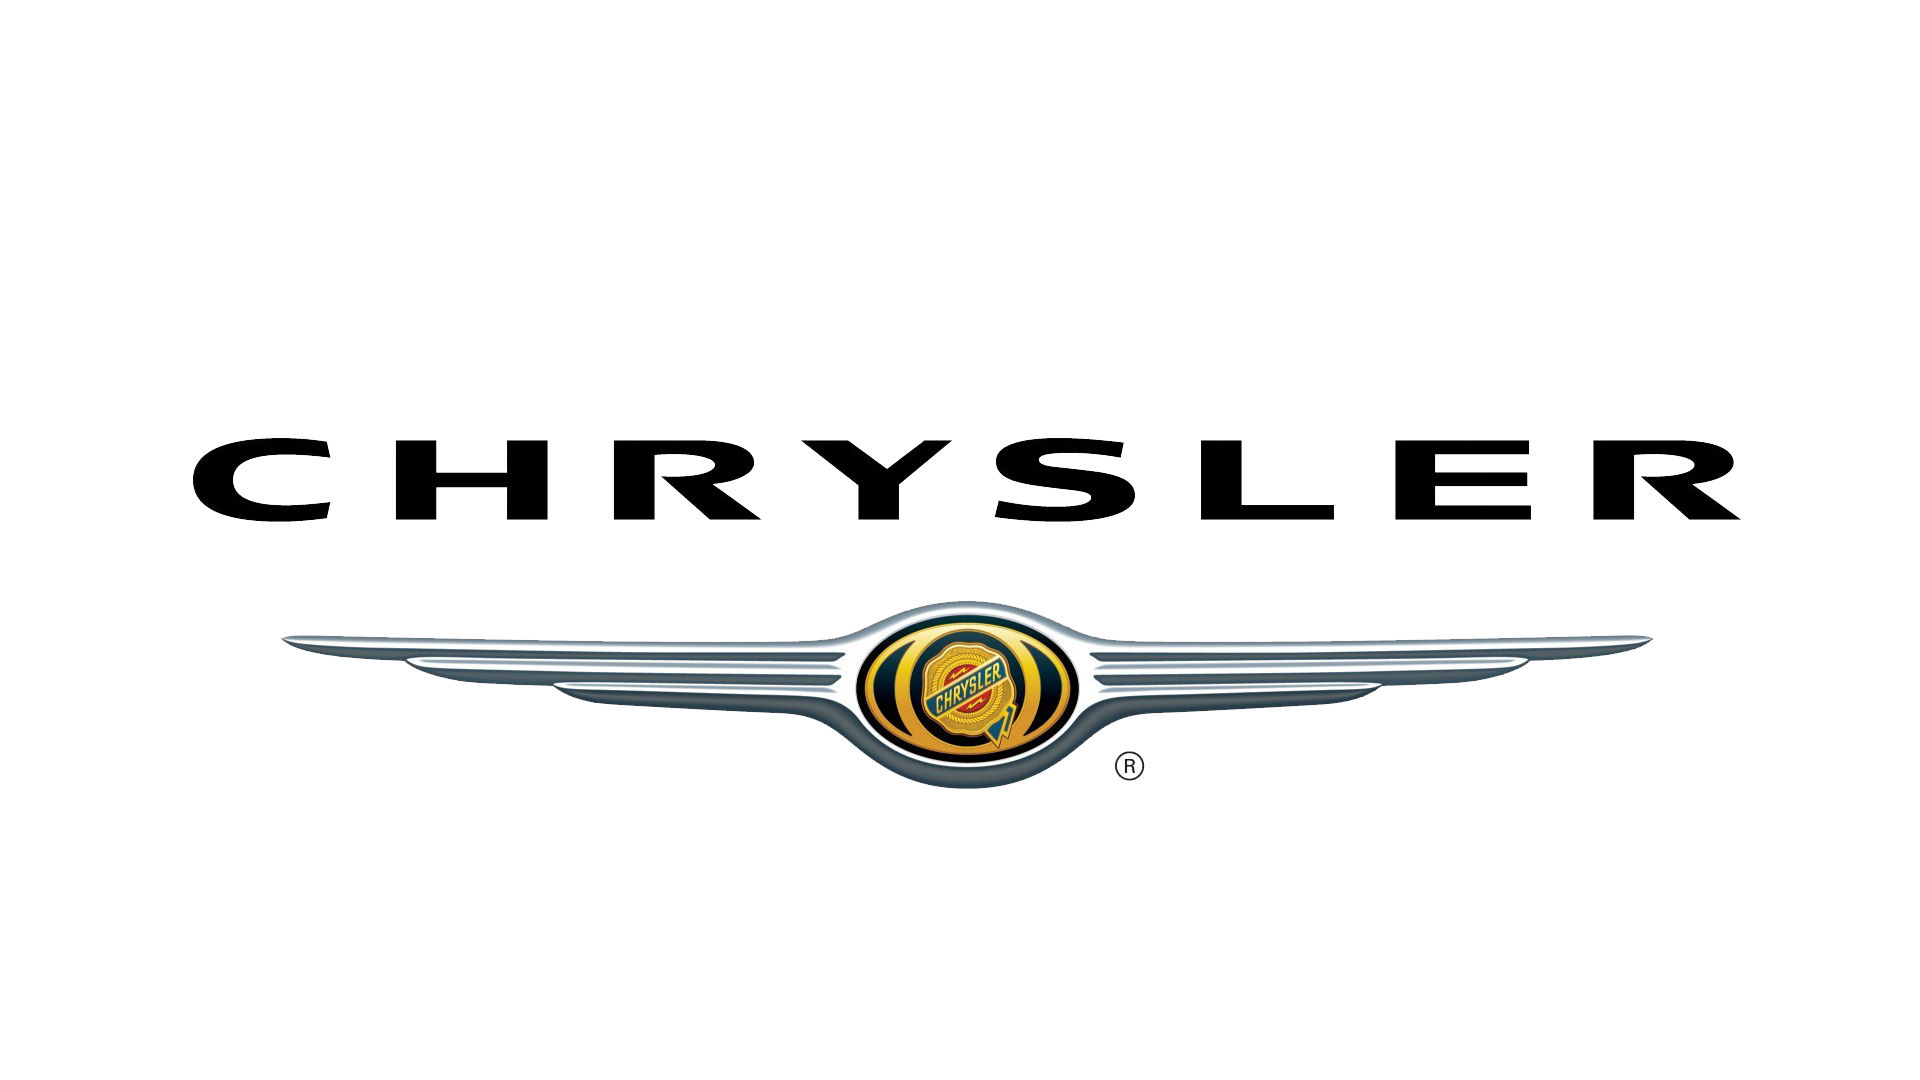 Chrysler Logo, HD Png, Meaning, Information.